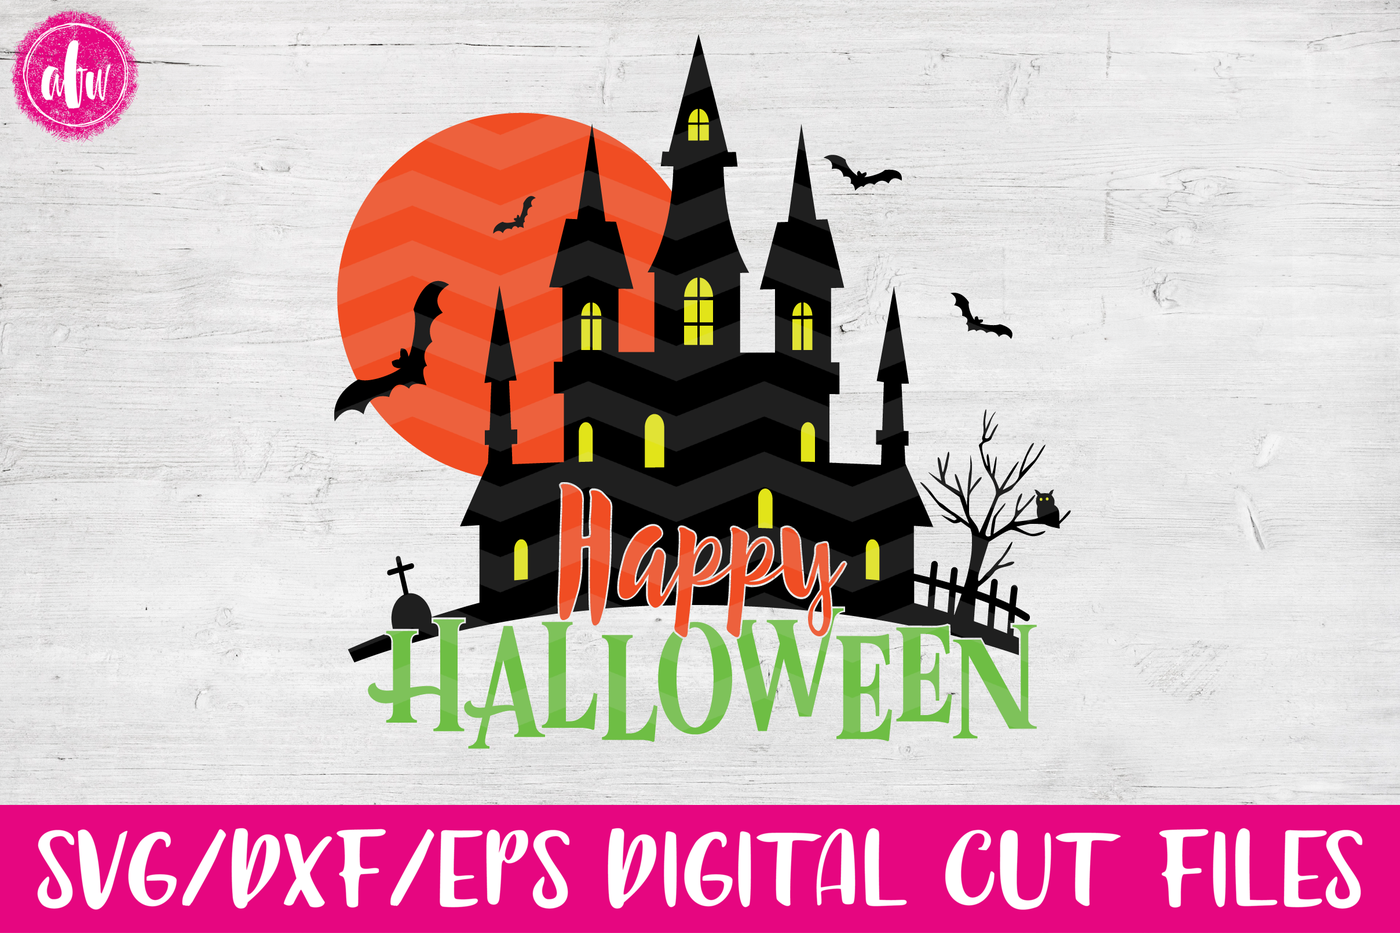 Happy Halloween Haunted House By Afw Designs Thehungryjpeg Com